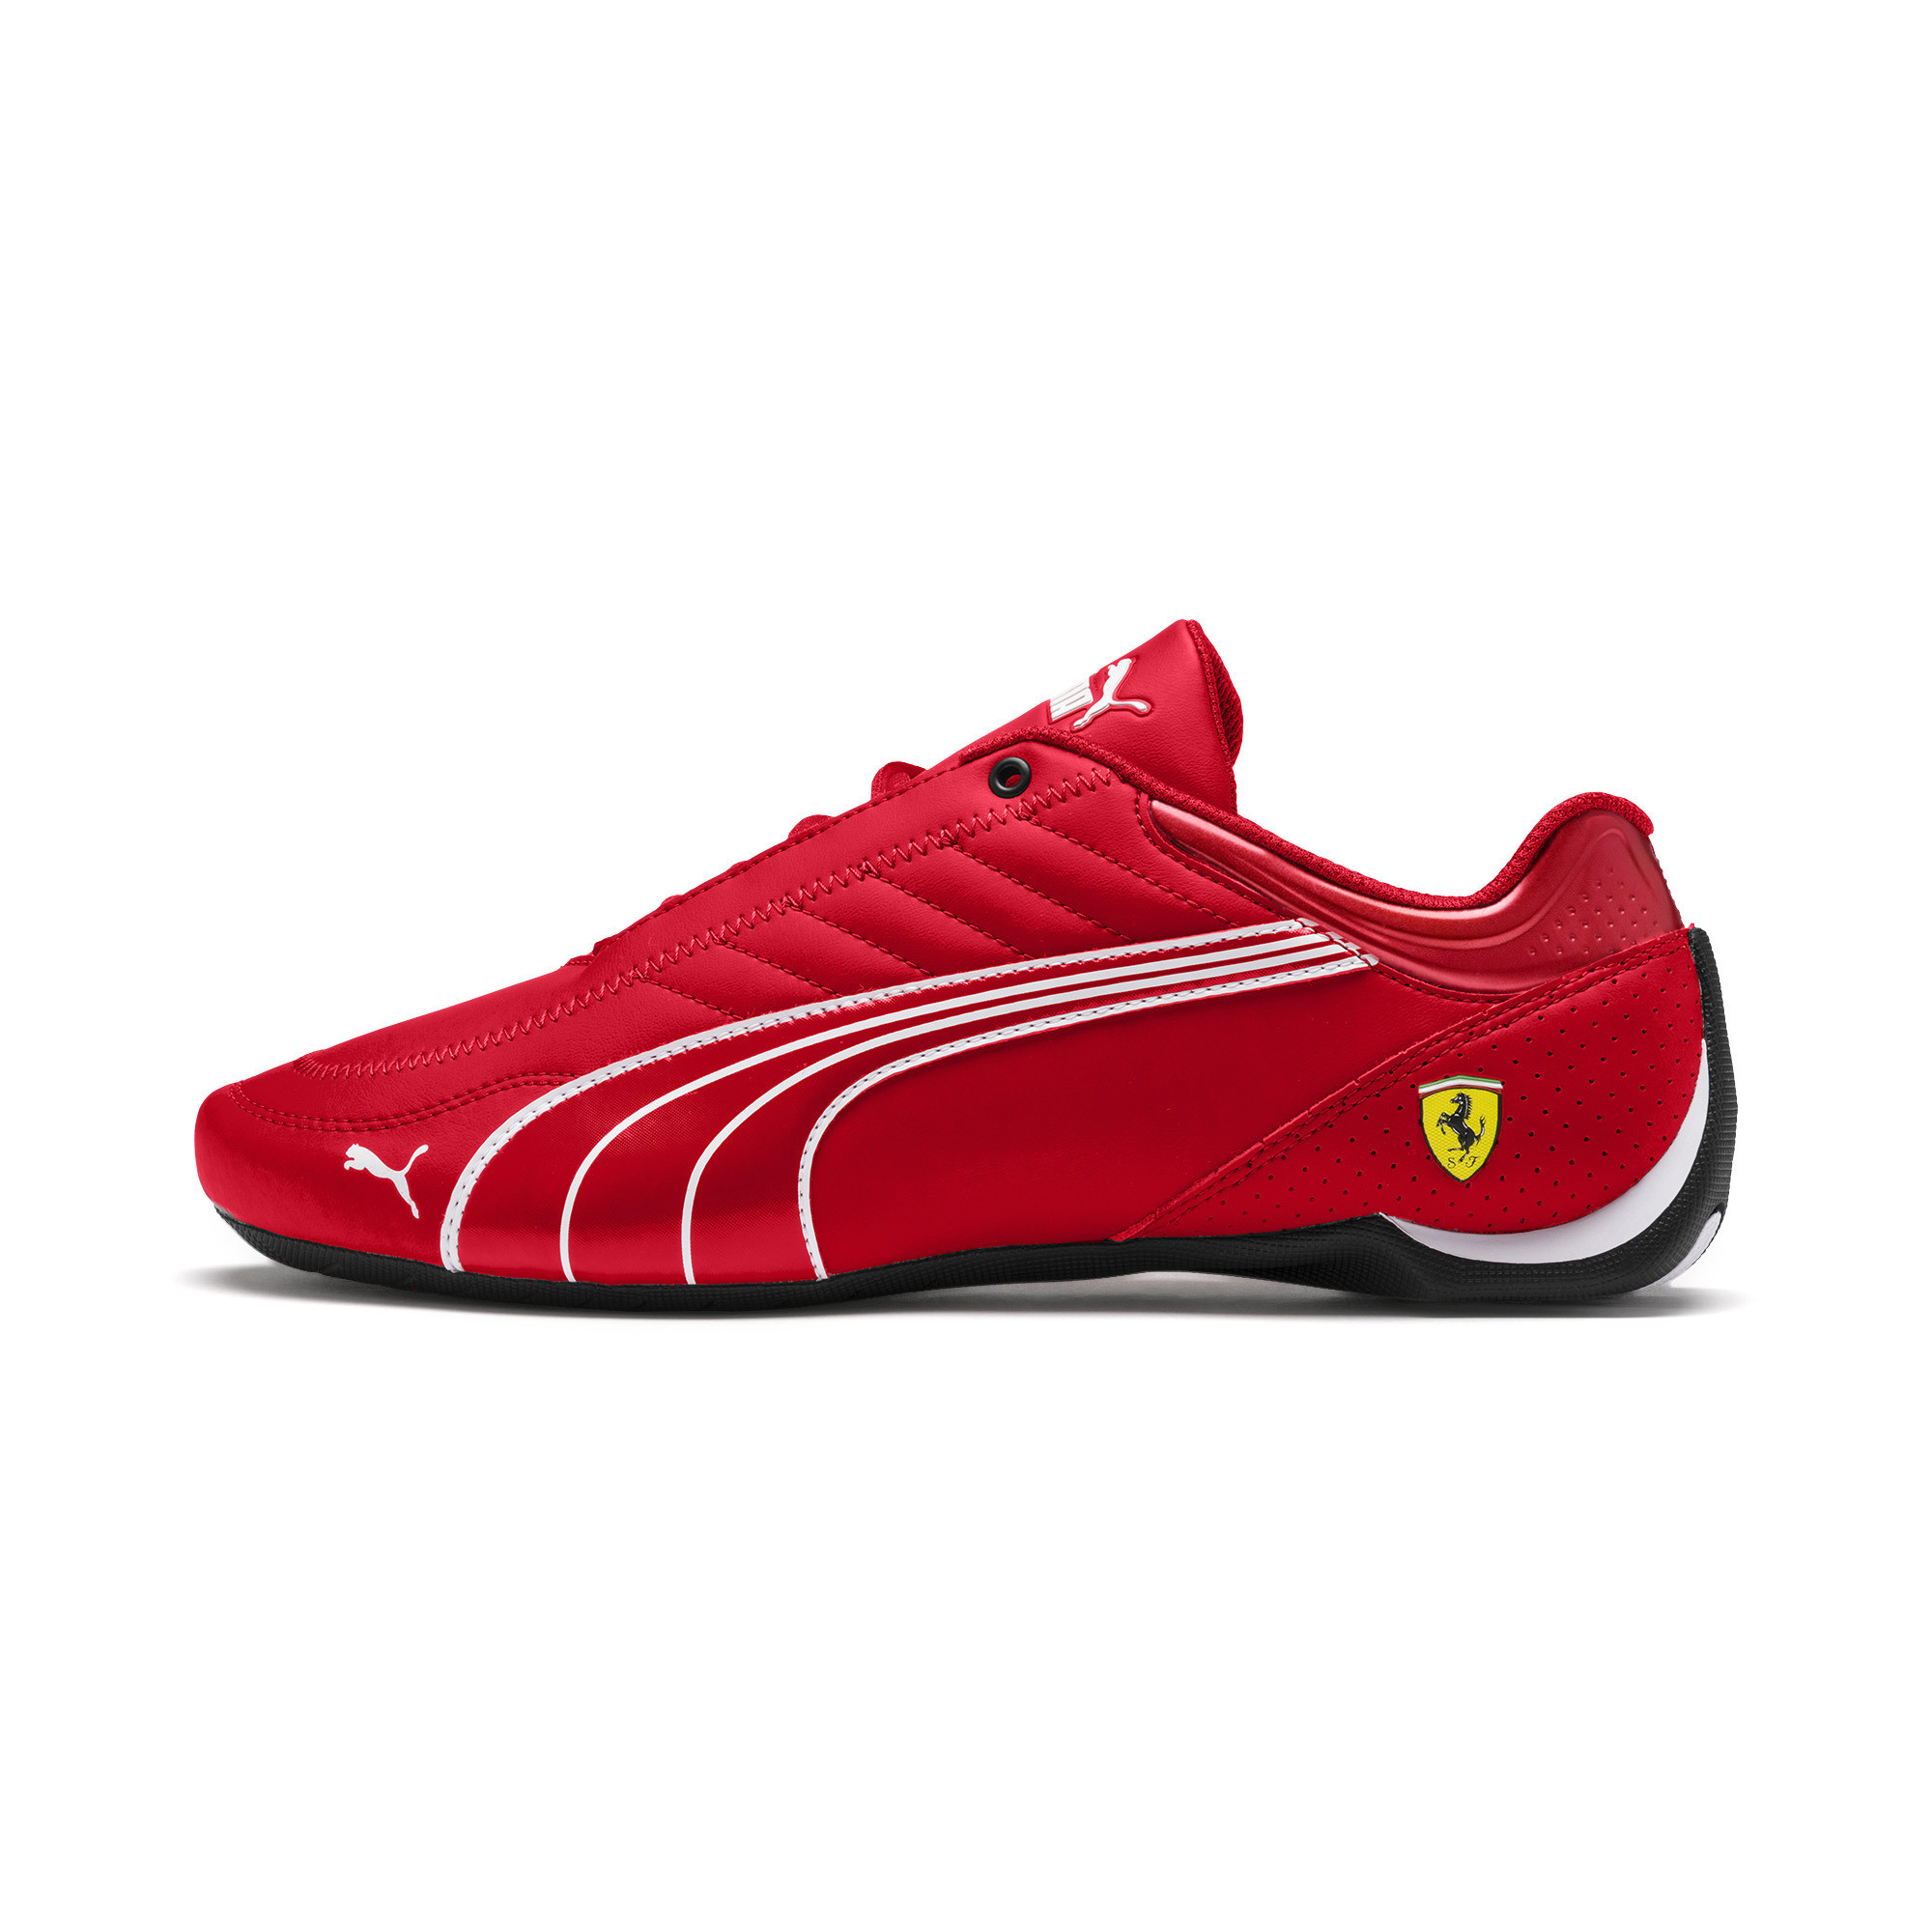 PUMA-Scuderia-Ferrari-Future-Kart-Cat-Men-039-s-Shoes-Men-Shoe-Auto thumbnail 11